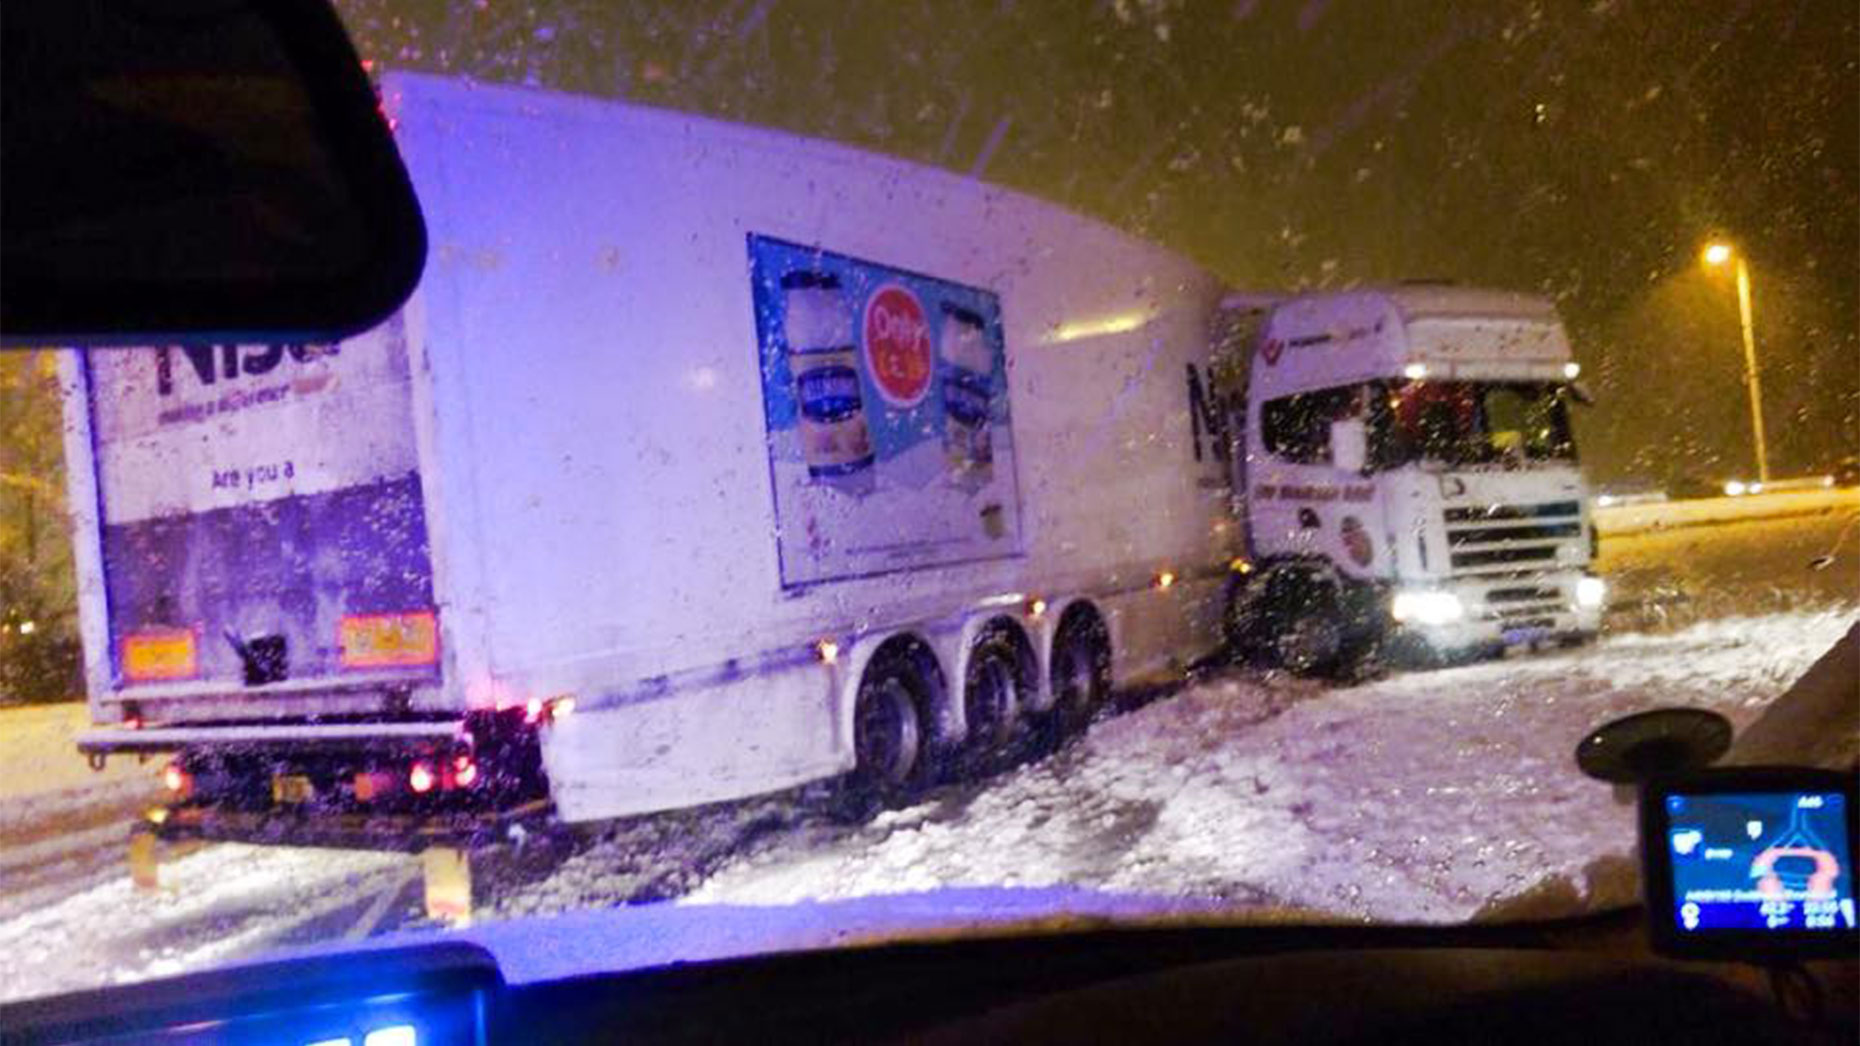 An HGV in a bit of a predicament at the Doddington Road roundabout in Lincoln on December 26. Photo: Lincs Road Policing